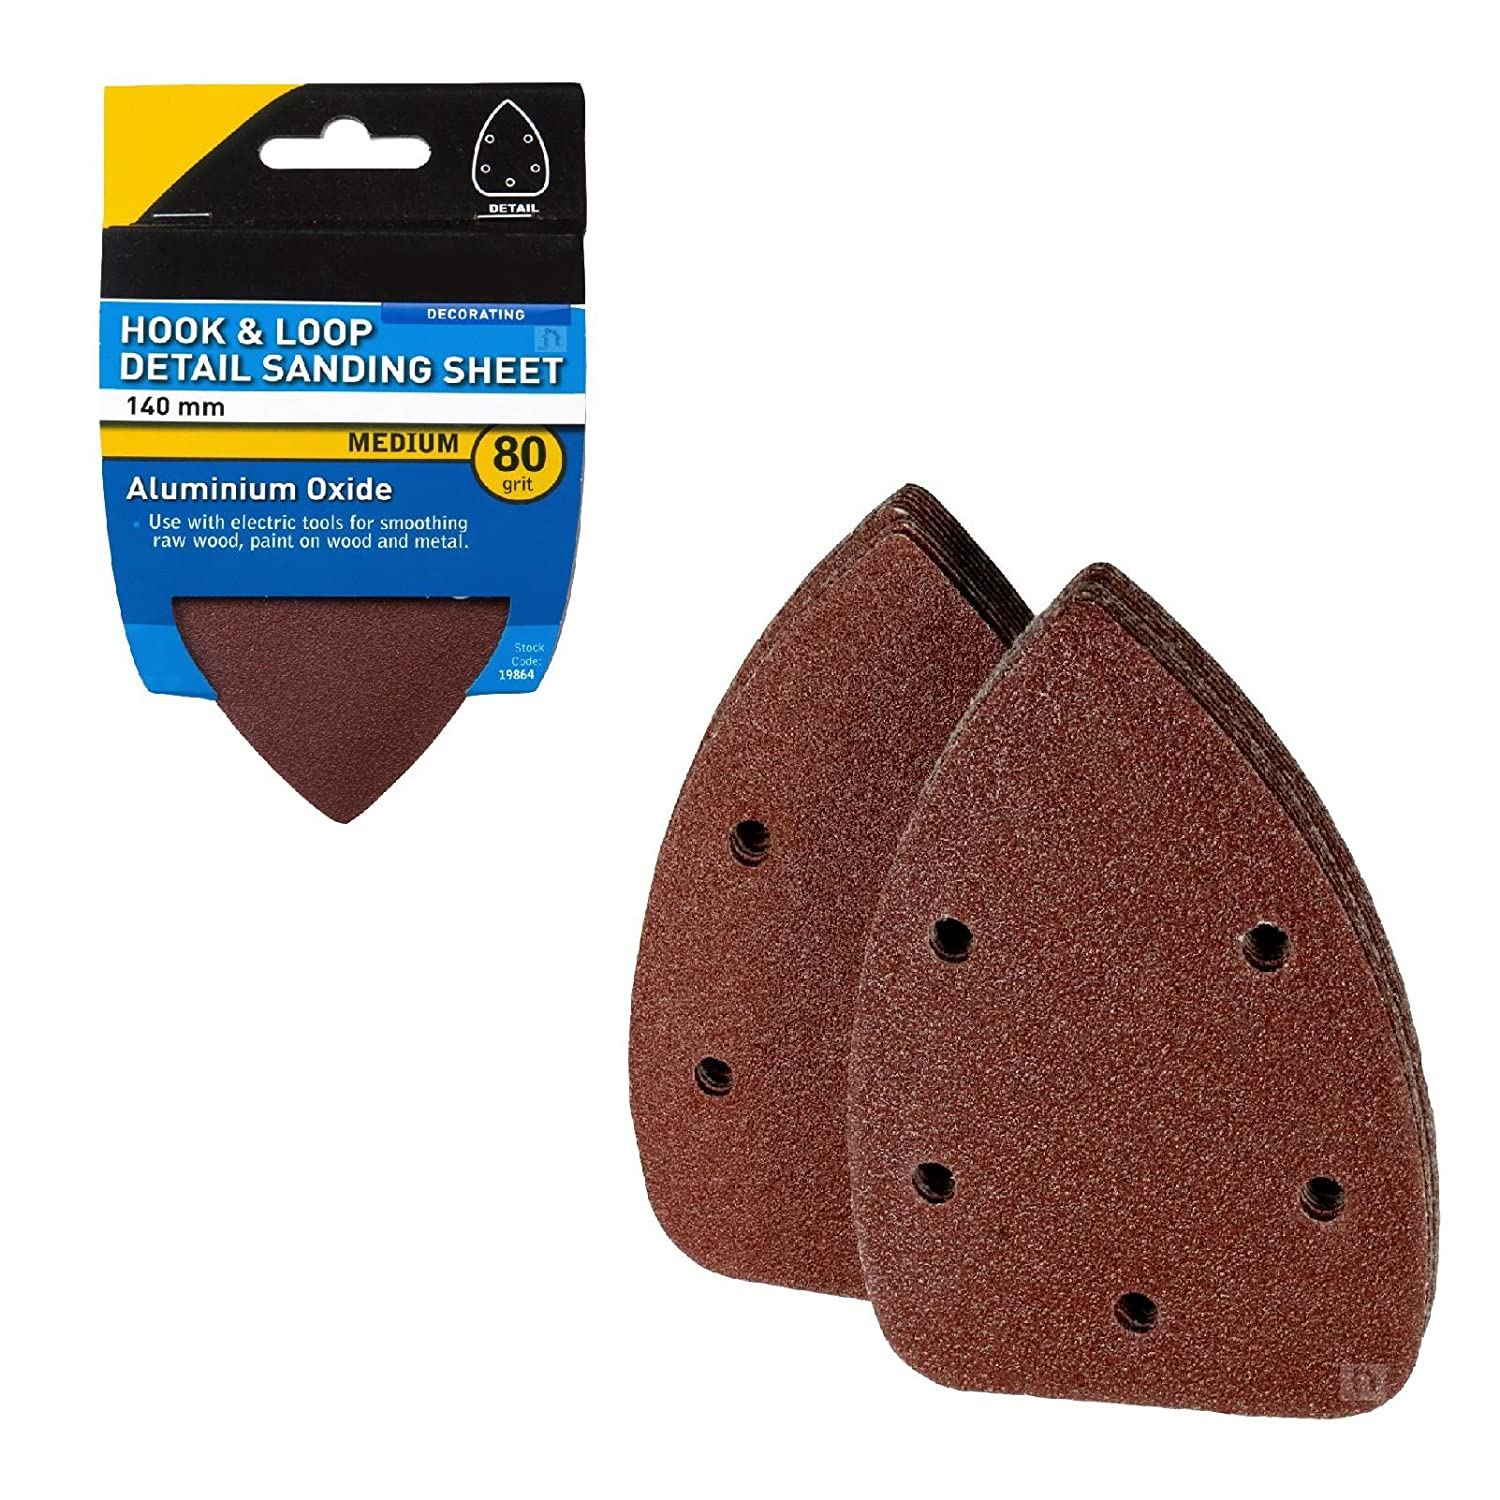 20 x Hook and Loop 140mm Detail Sanding Sheets 80 Grit Triangle Sandpaper Pads